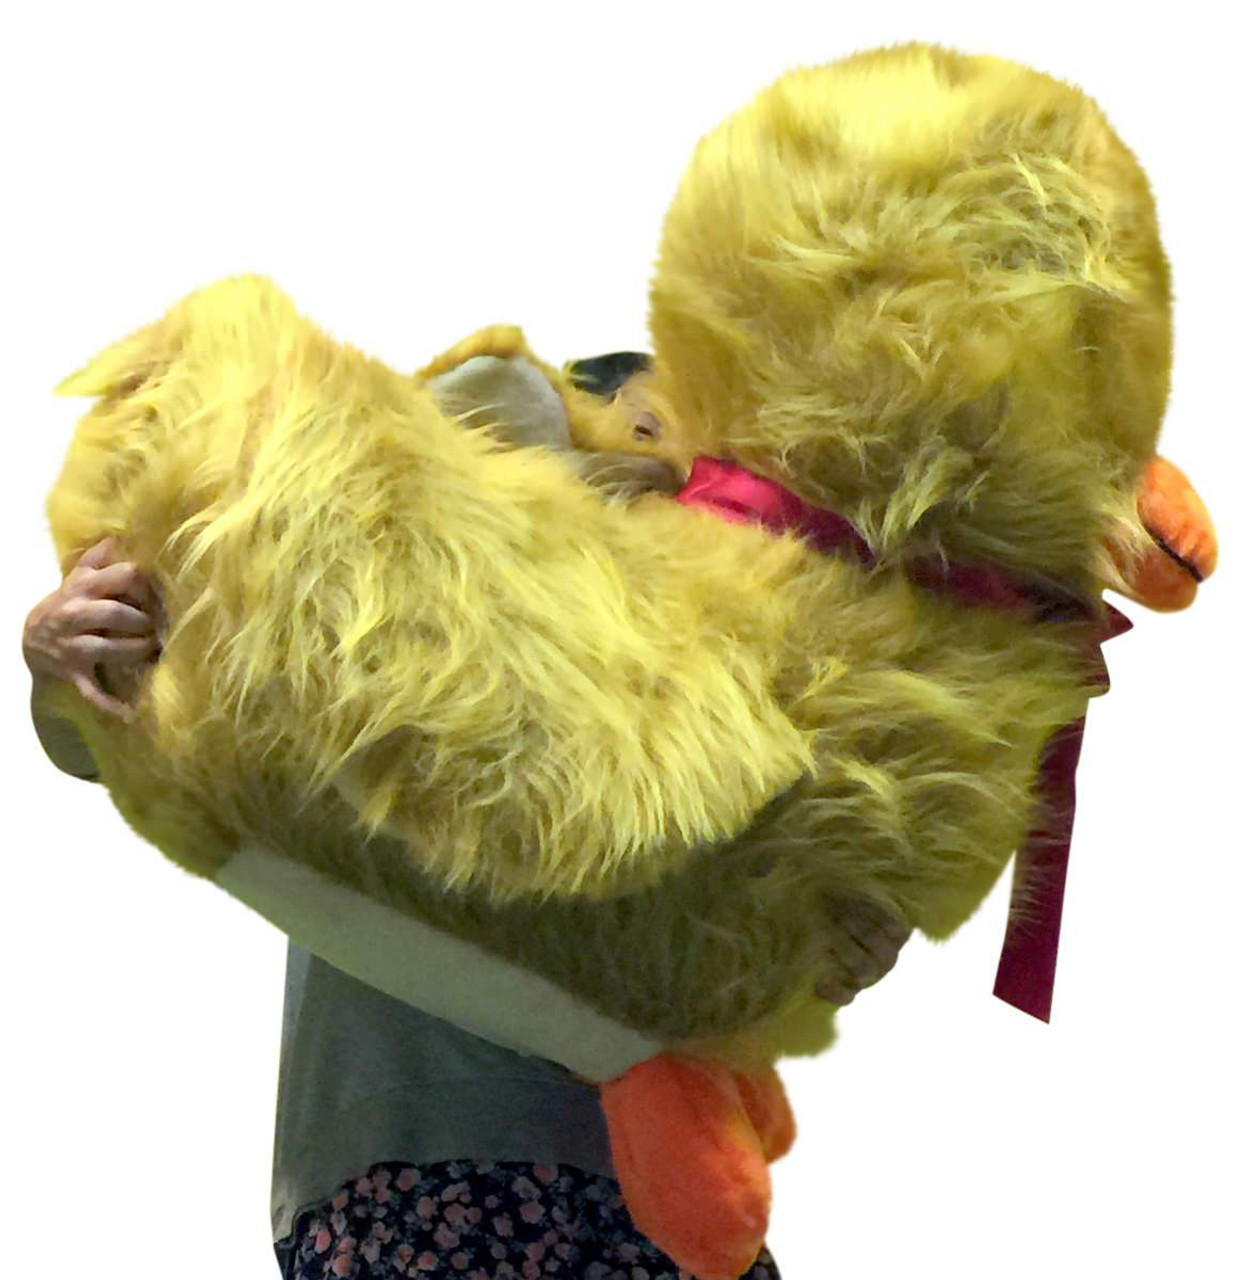 American Made Giant Stuffed Golden Brown Duck Soft 36 Inches Huge